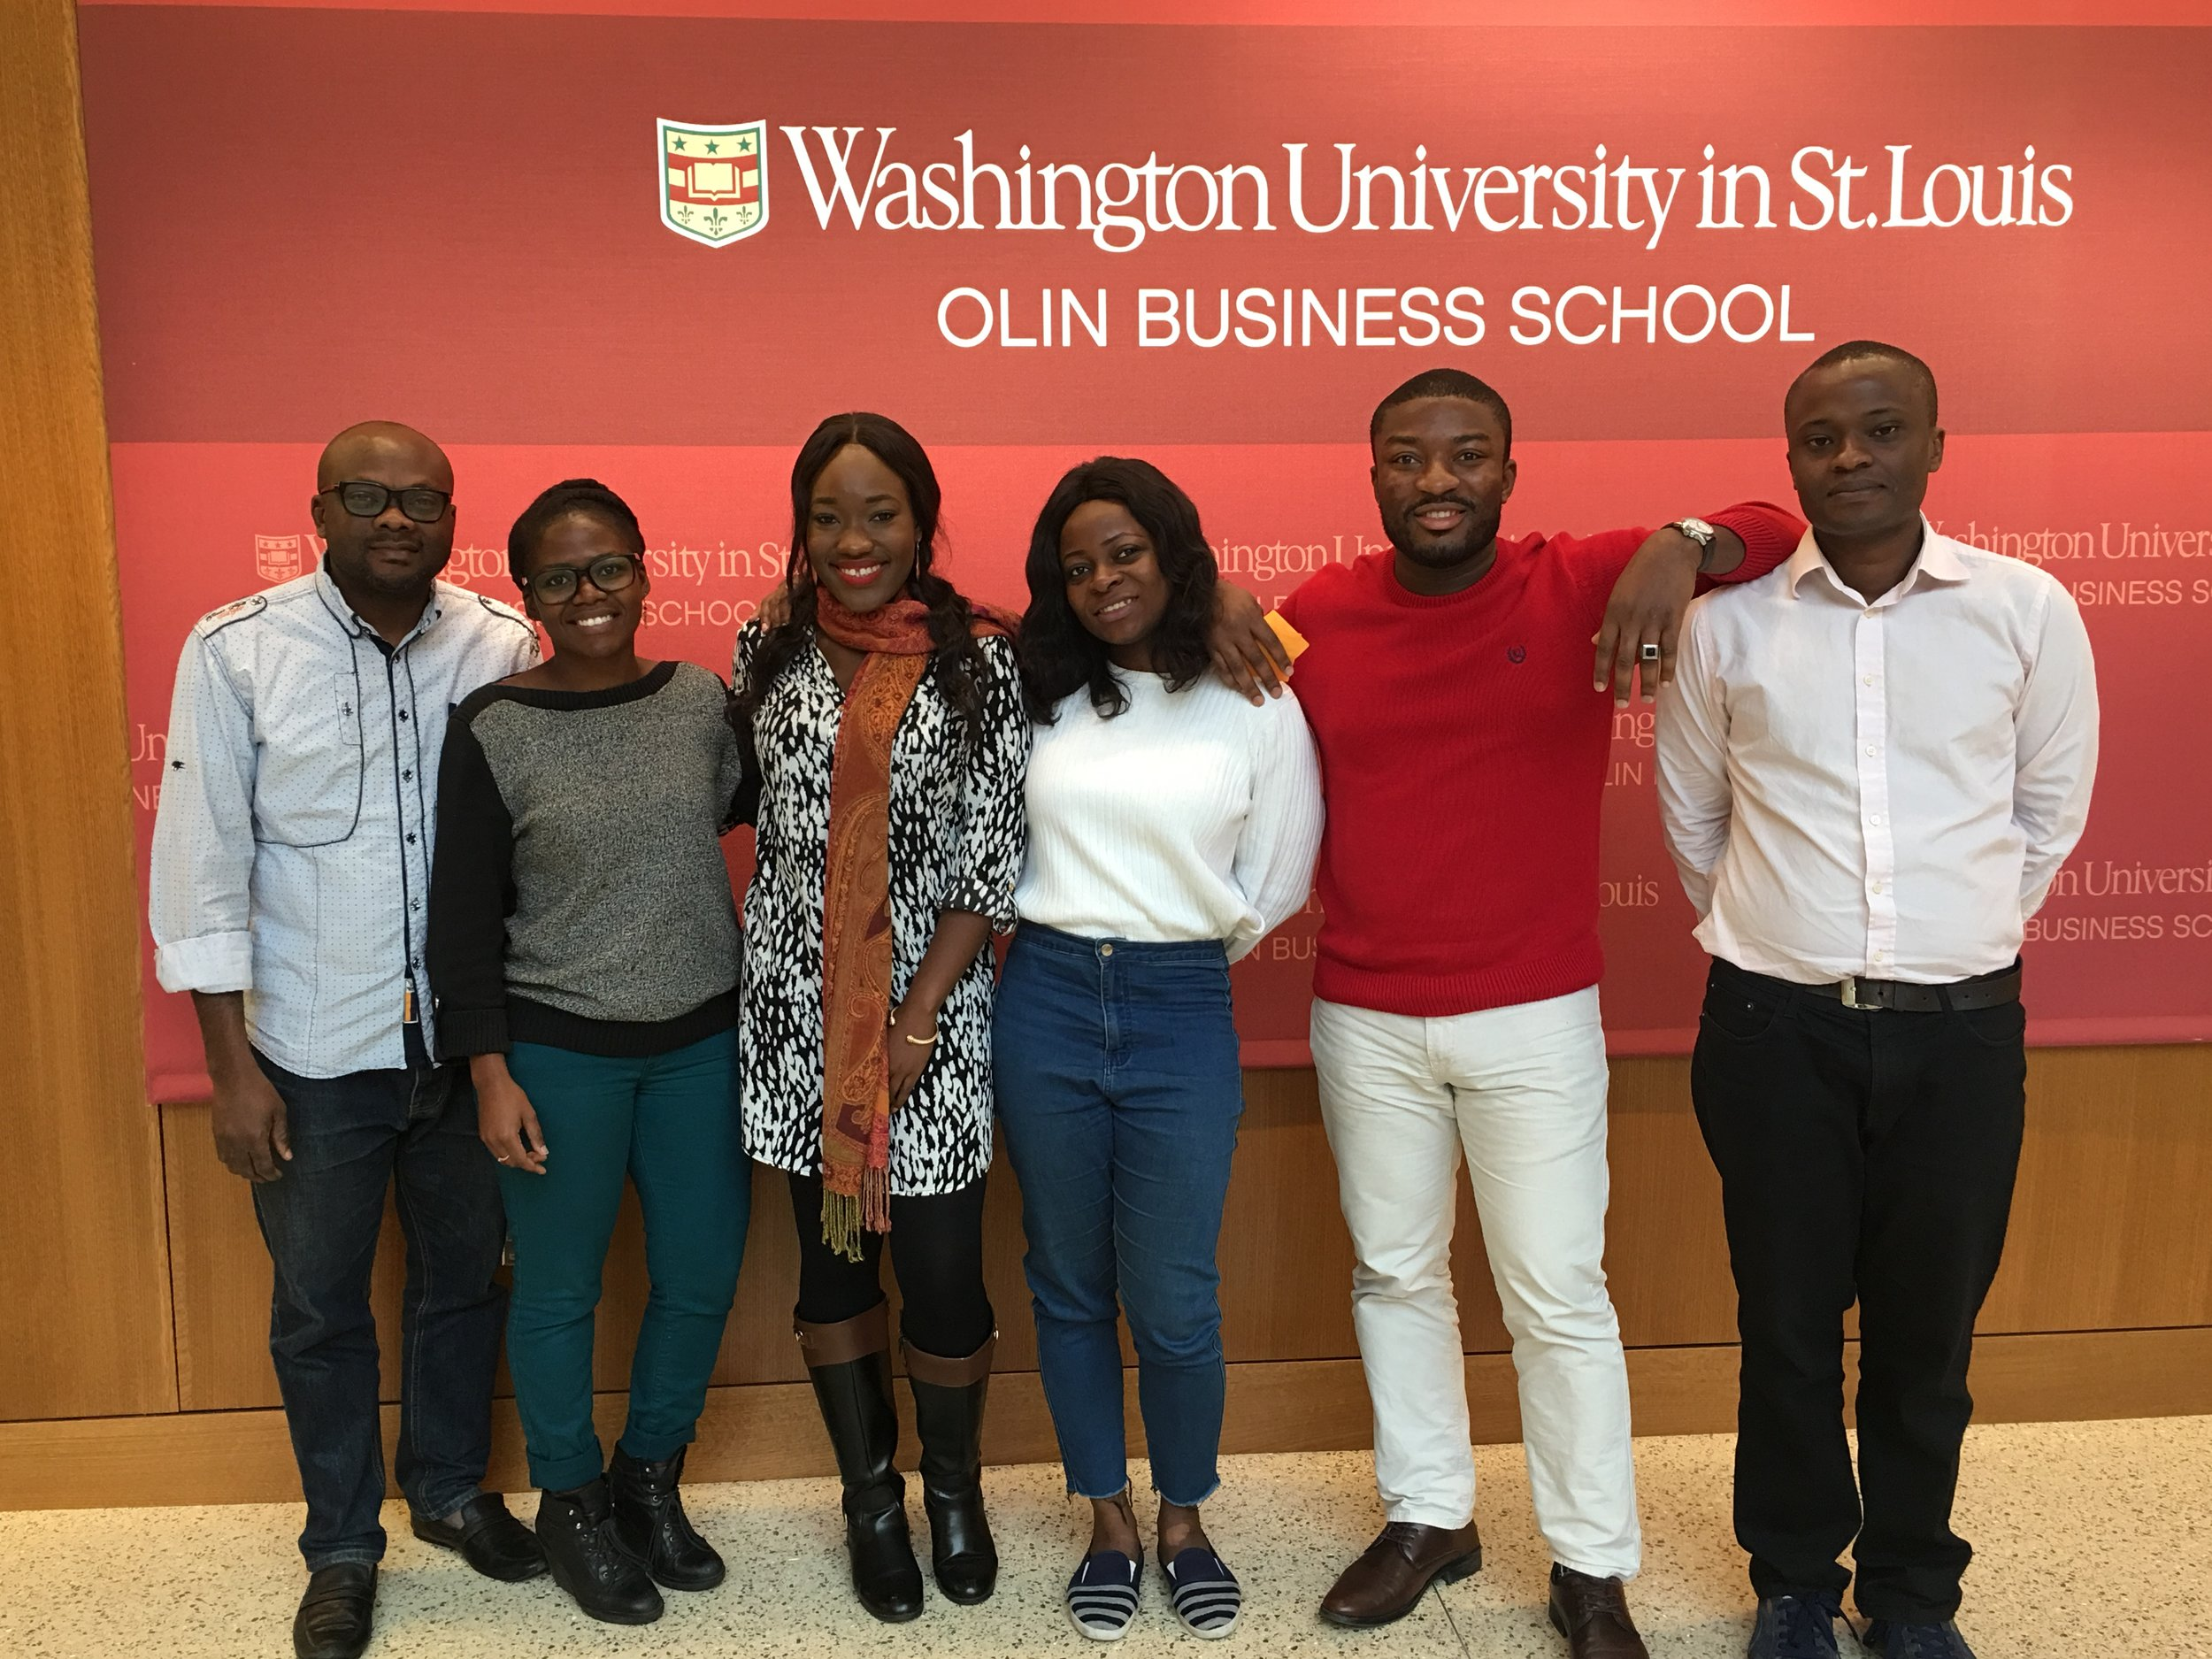 OABC Club Founders:   Olin Africa Business Club (OABC) was founded on October 7th, 2017 by first year's class of 2019: Ony Mgbeahurike, Matilda Thomas, Sharon Mazimba, Chioma Ukeje, Eric Onteri & Ubaka Ogbunude. This was recognized as a need to raise awareness about Africa and her rich opportunities and growth.